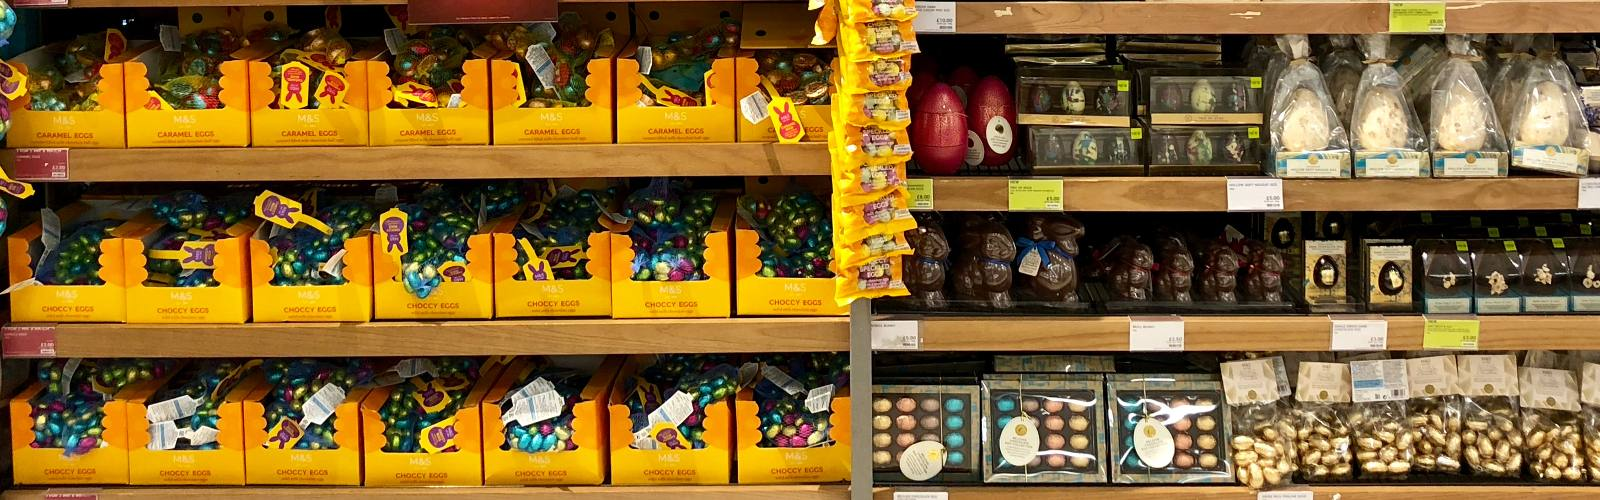 For Earth's sake, can we avoid single use plastics this Easter?